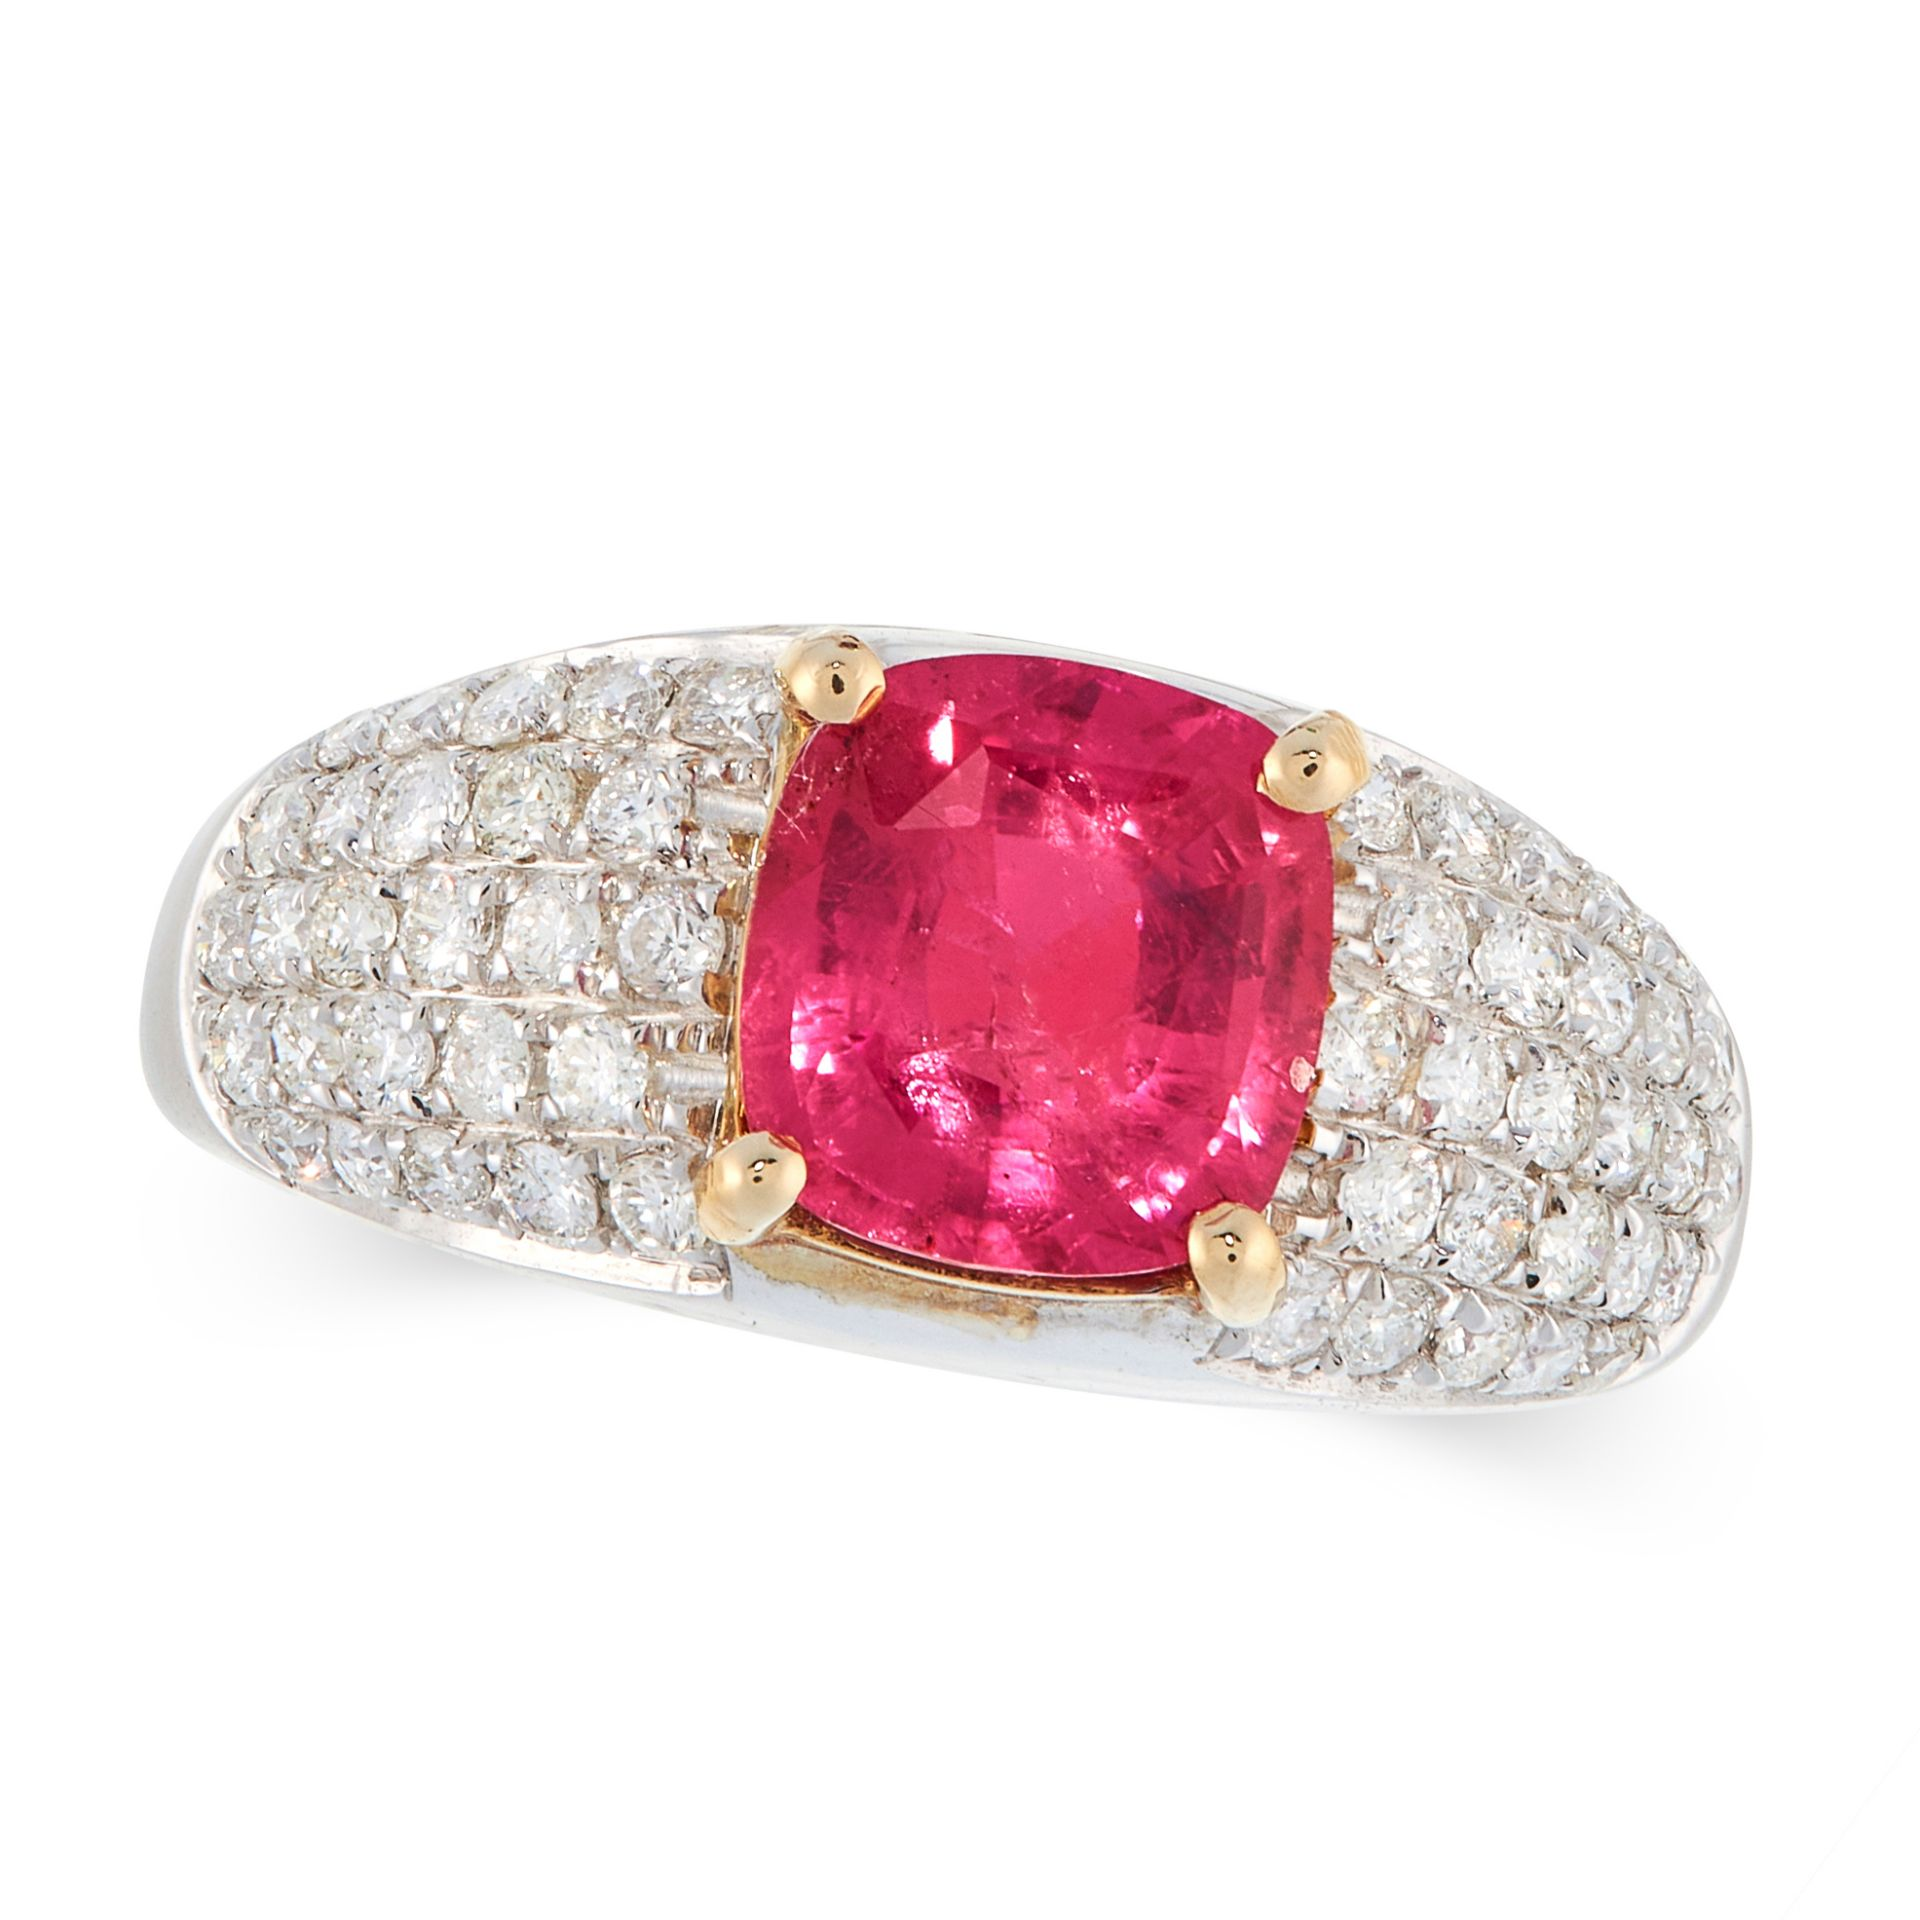 AN UNHEATED RUBY AND DIAMOND DRESS RING in 18ct white and yellow gold, set with a cushion cut ruby